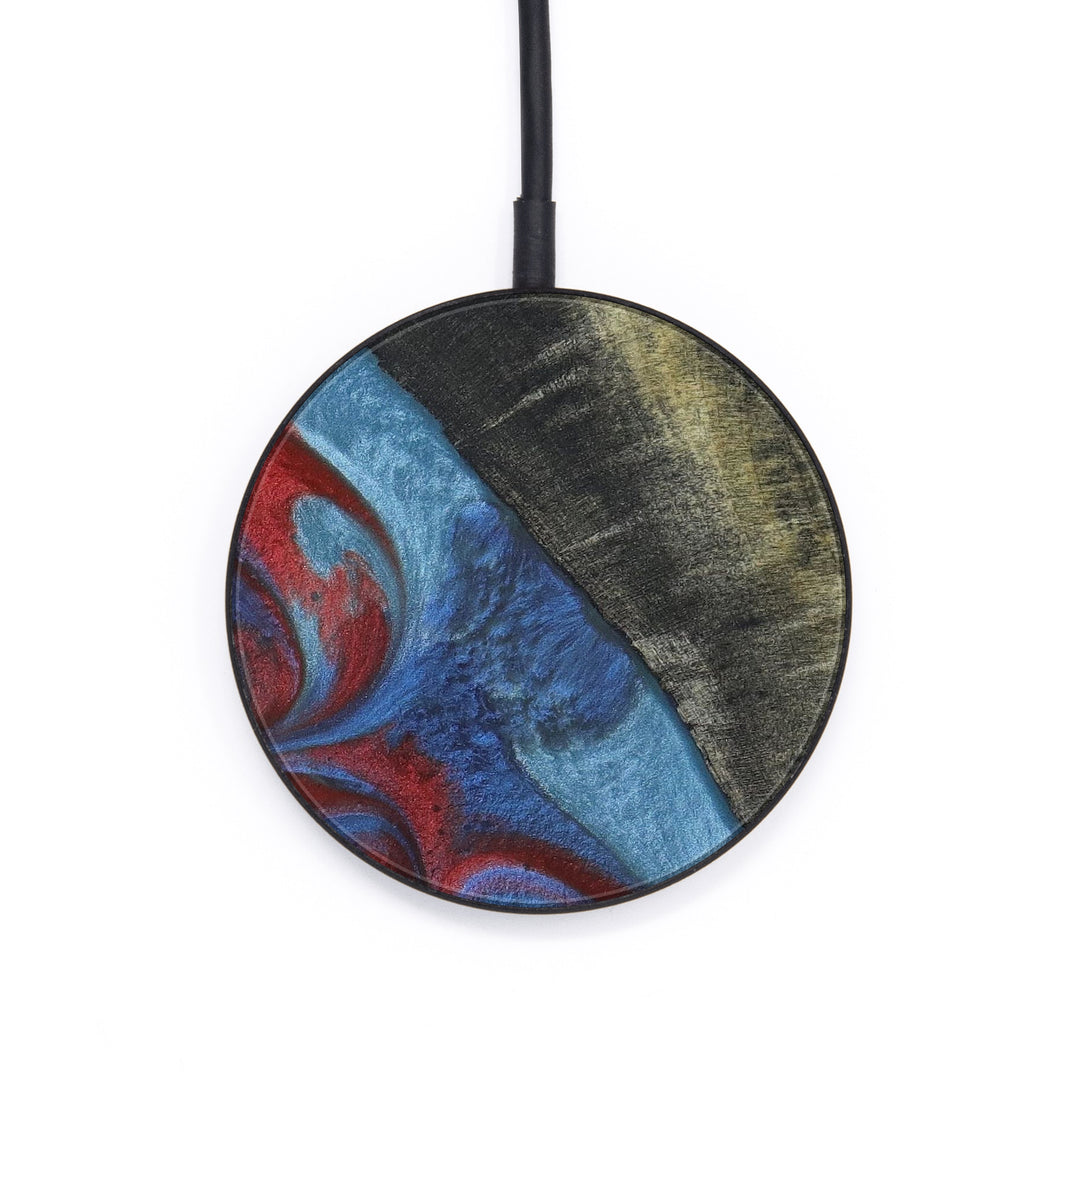 Circle Wood+Resin Wireless Charger - Lanny (Blue & Red, 405624)